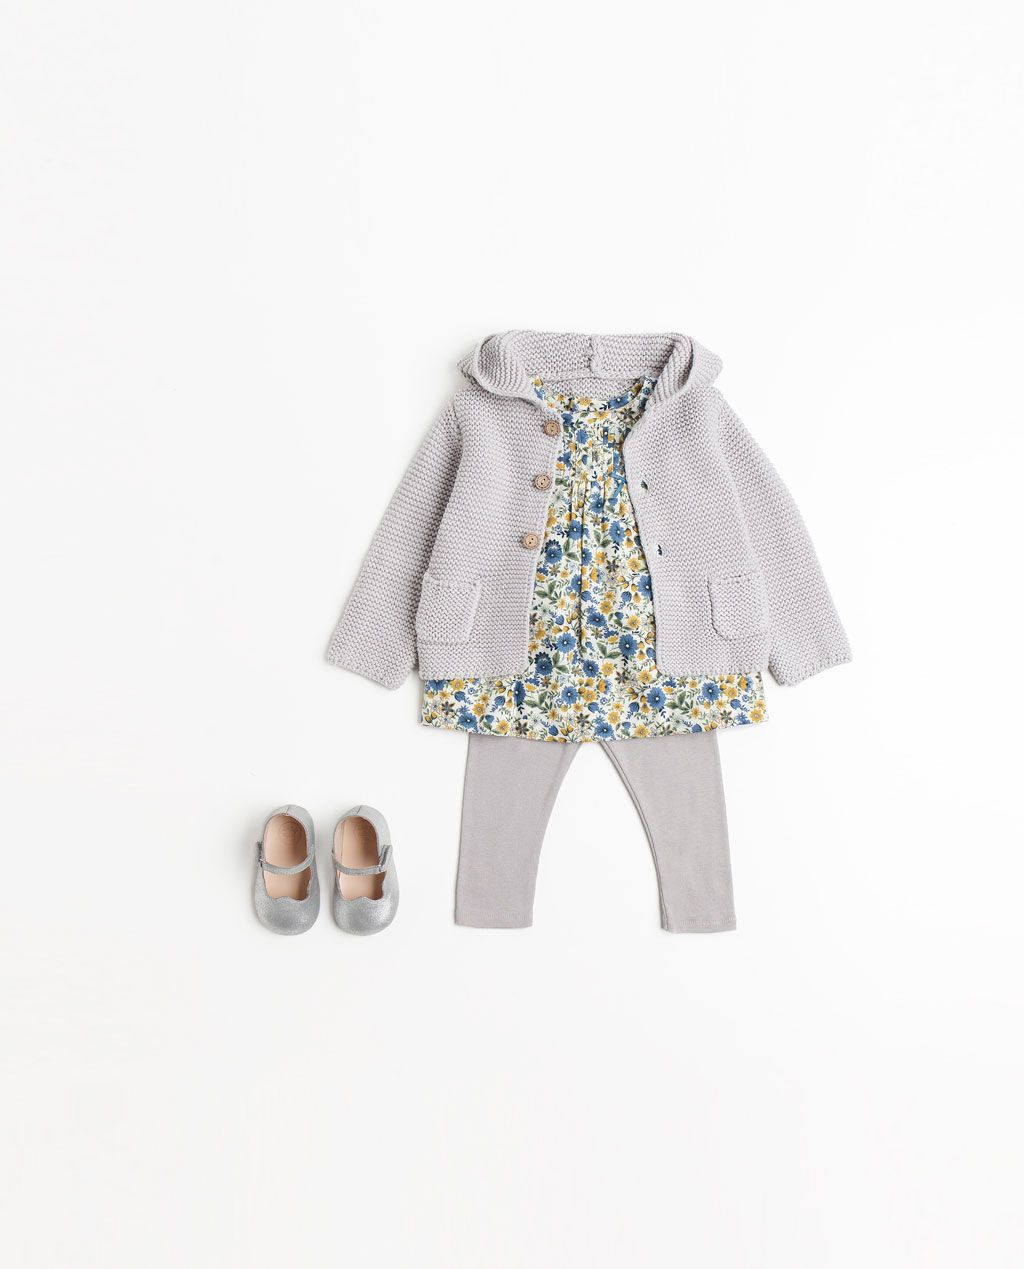 bbd2bd8643e9 Image 1 of from Zara Baby Girl Fall Clothes, Fall Baby Outfits, Zara Baby